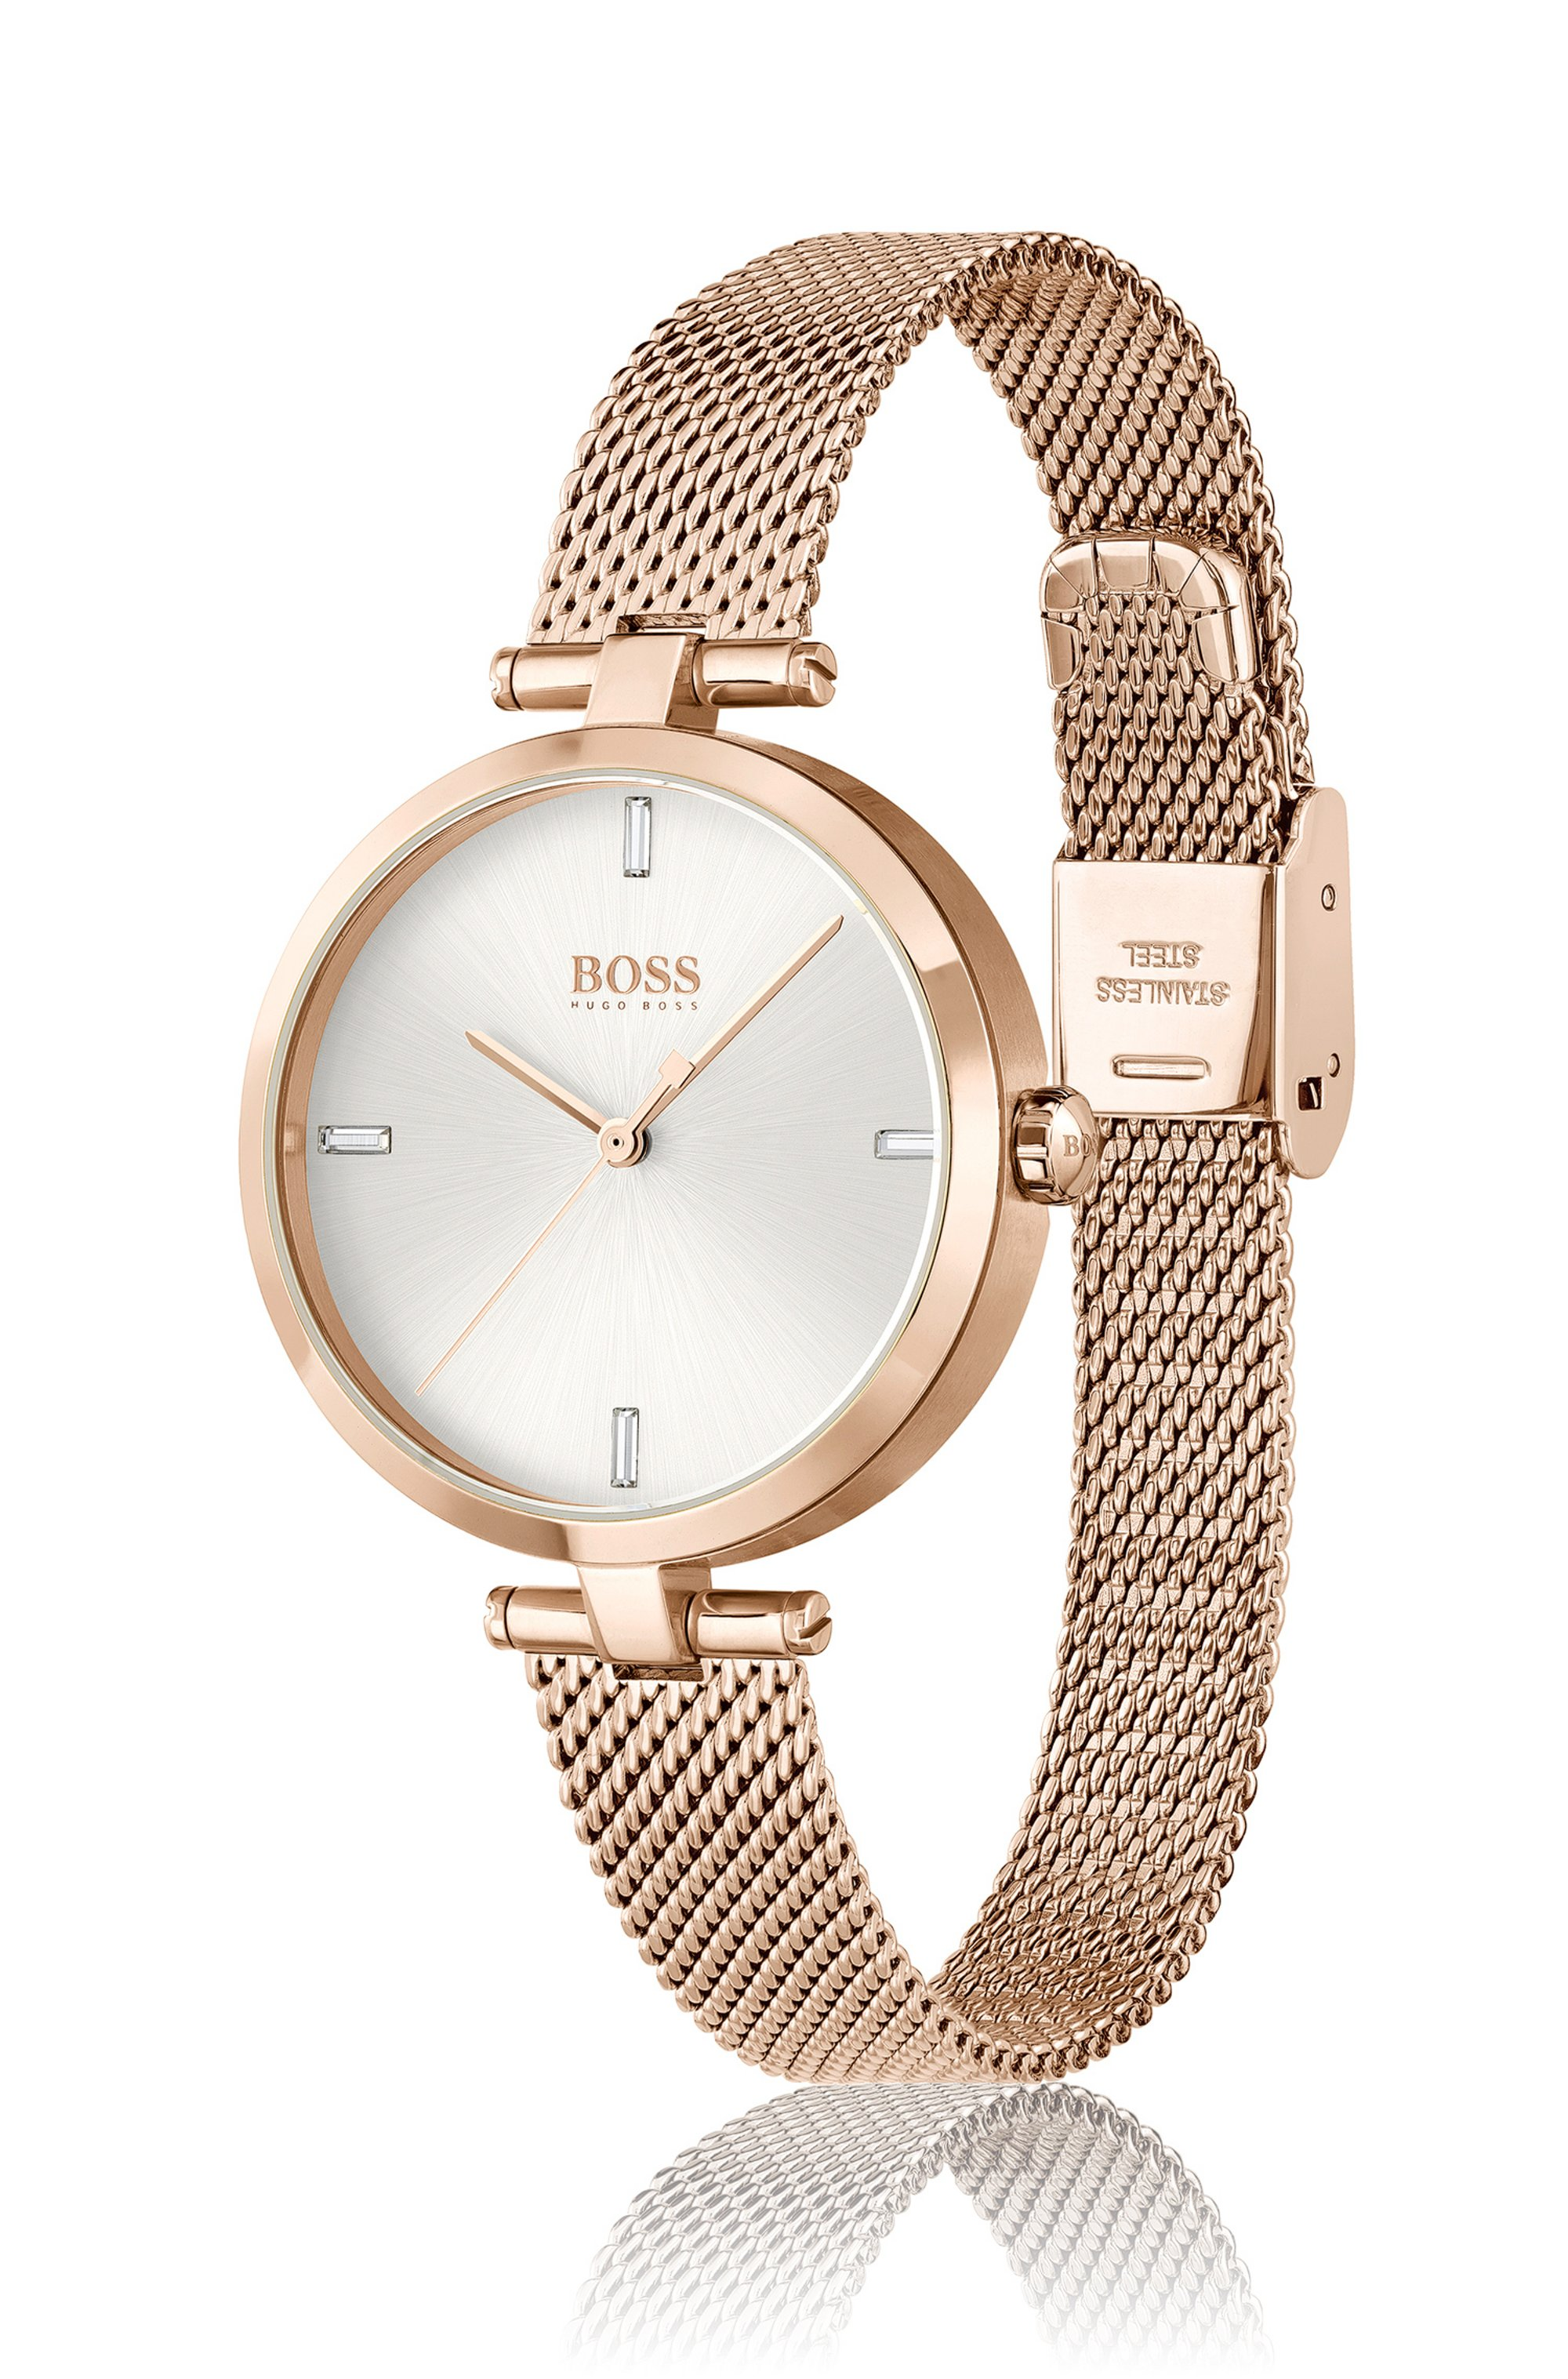 Carnation-gold-effect watch with crystal indexes